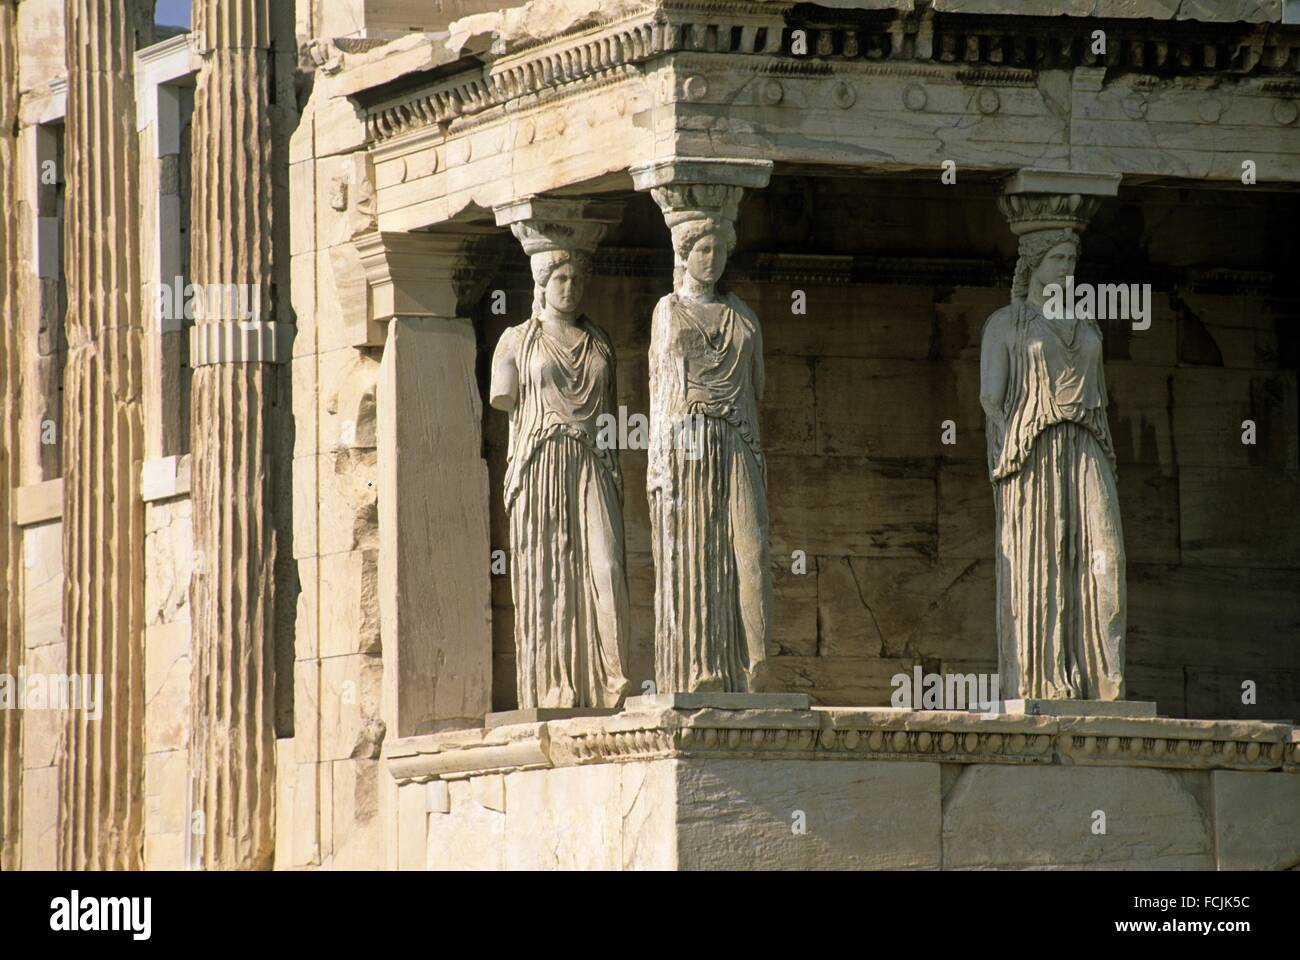 Caryatid of the Erechtheum, Acropolis, Athens, Attica region, Greece, Southern Europe. - Stock Image